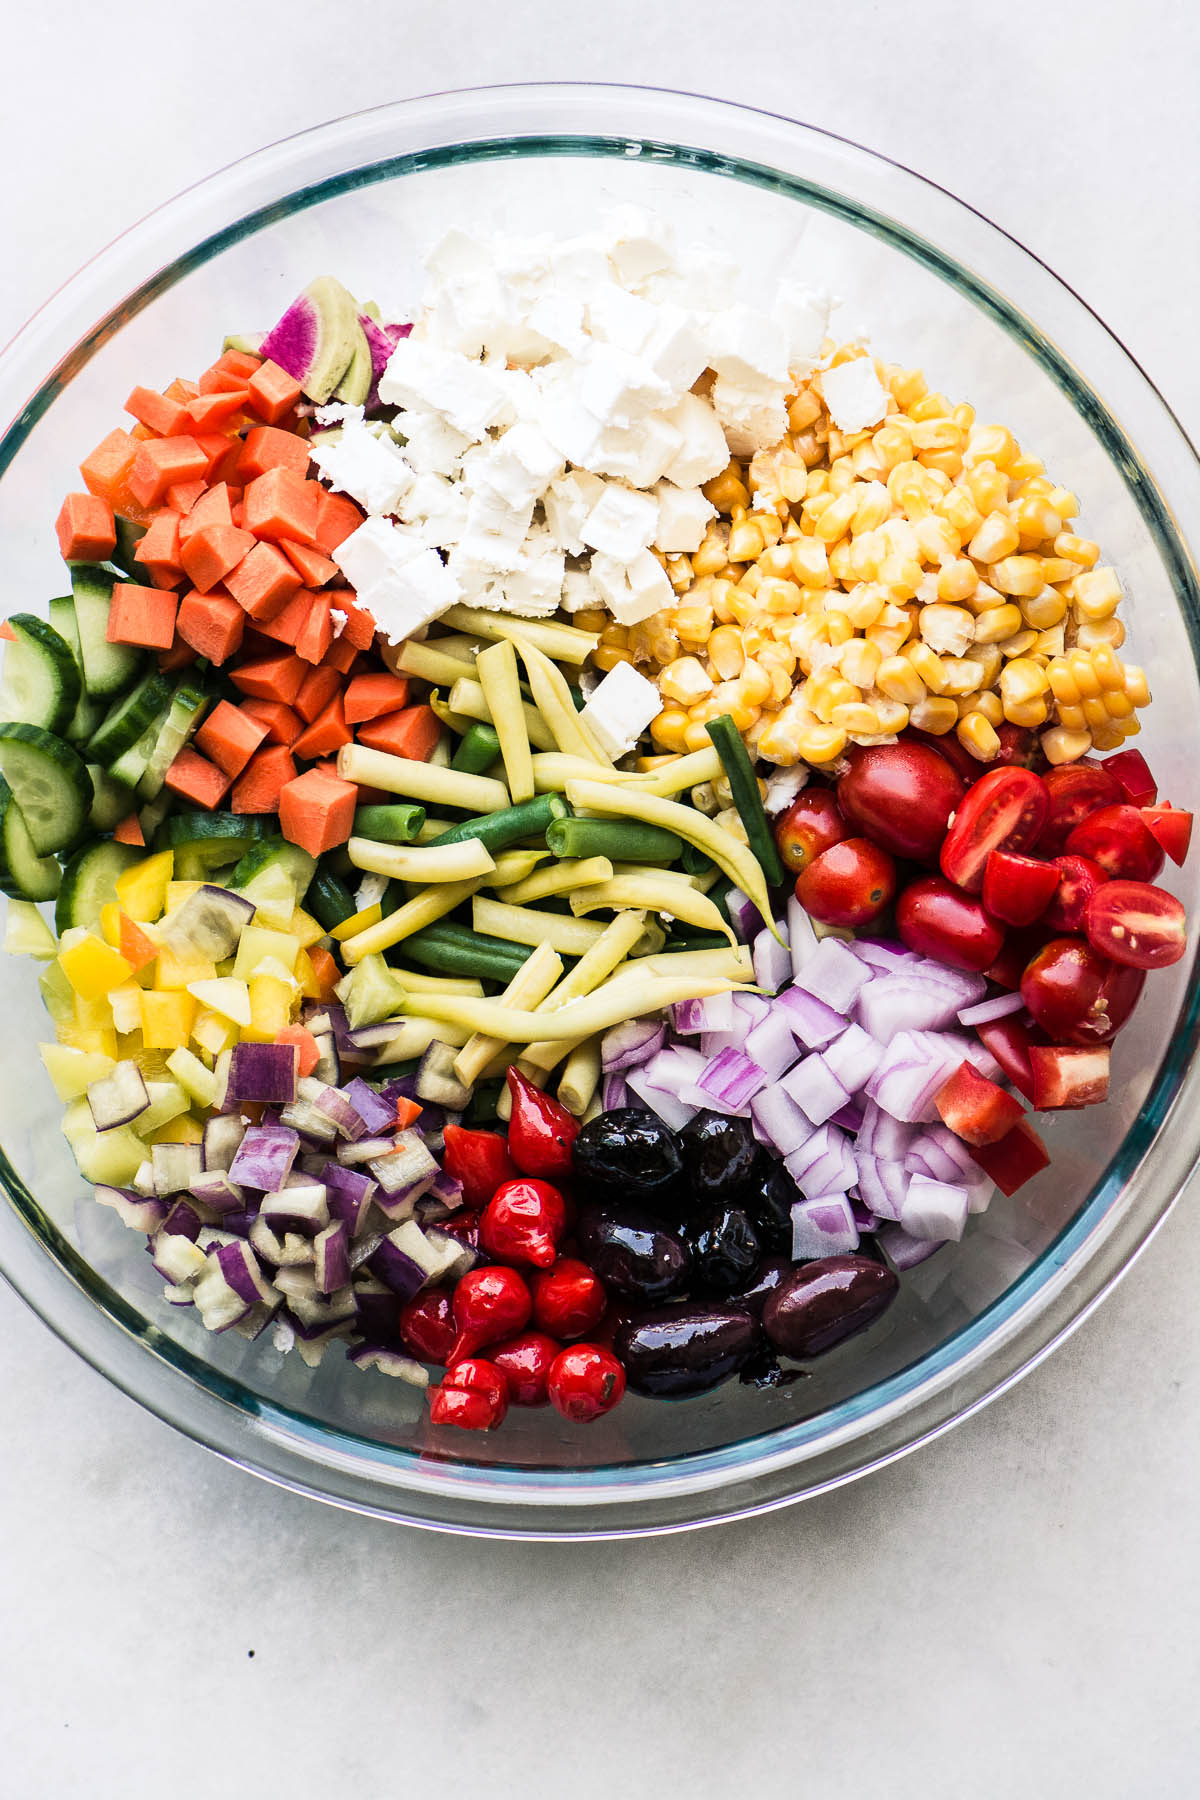 Chopped ingredients for Farmers Market Vegetable Salad in a glass bowl